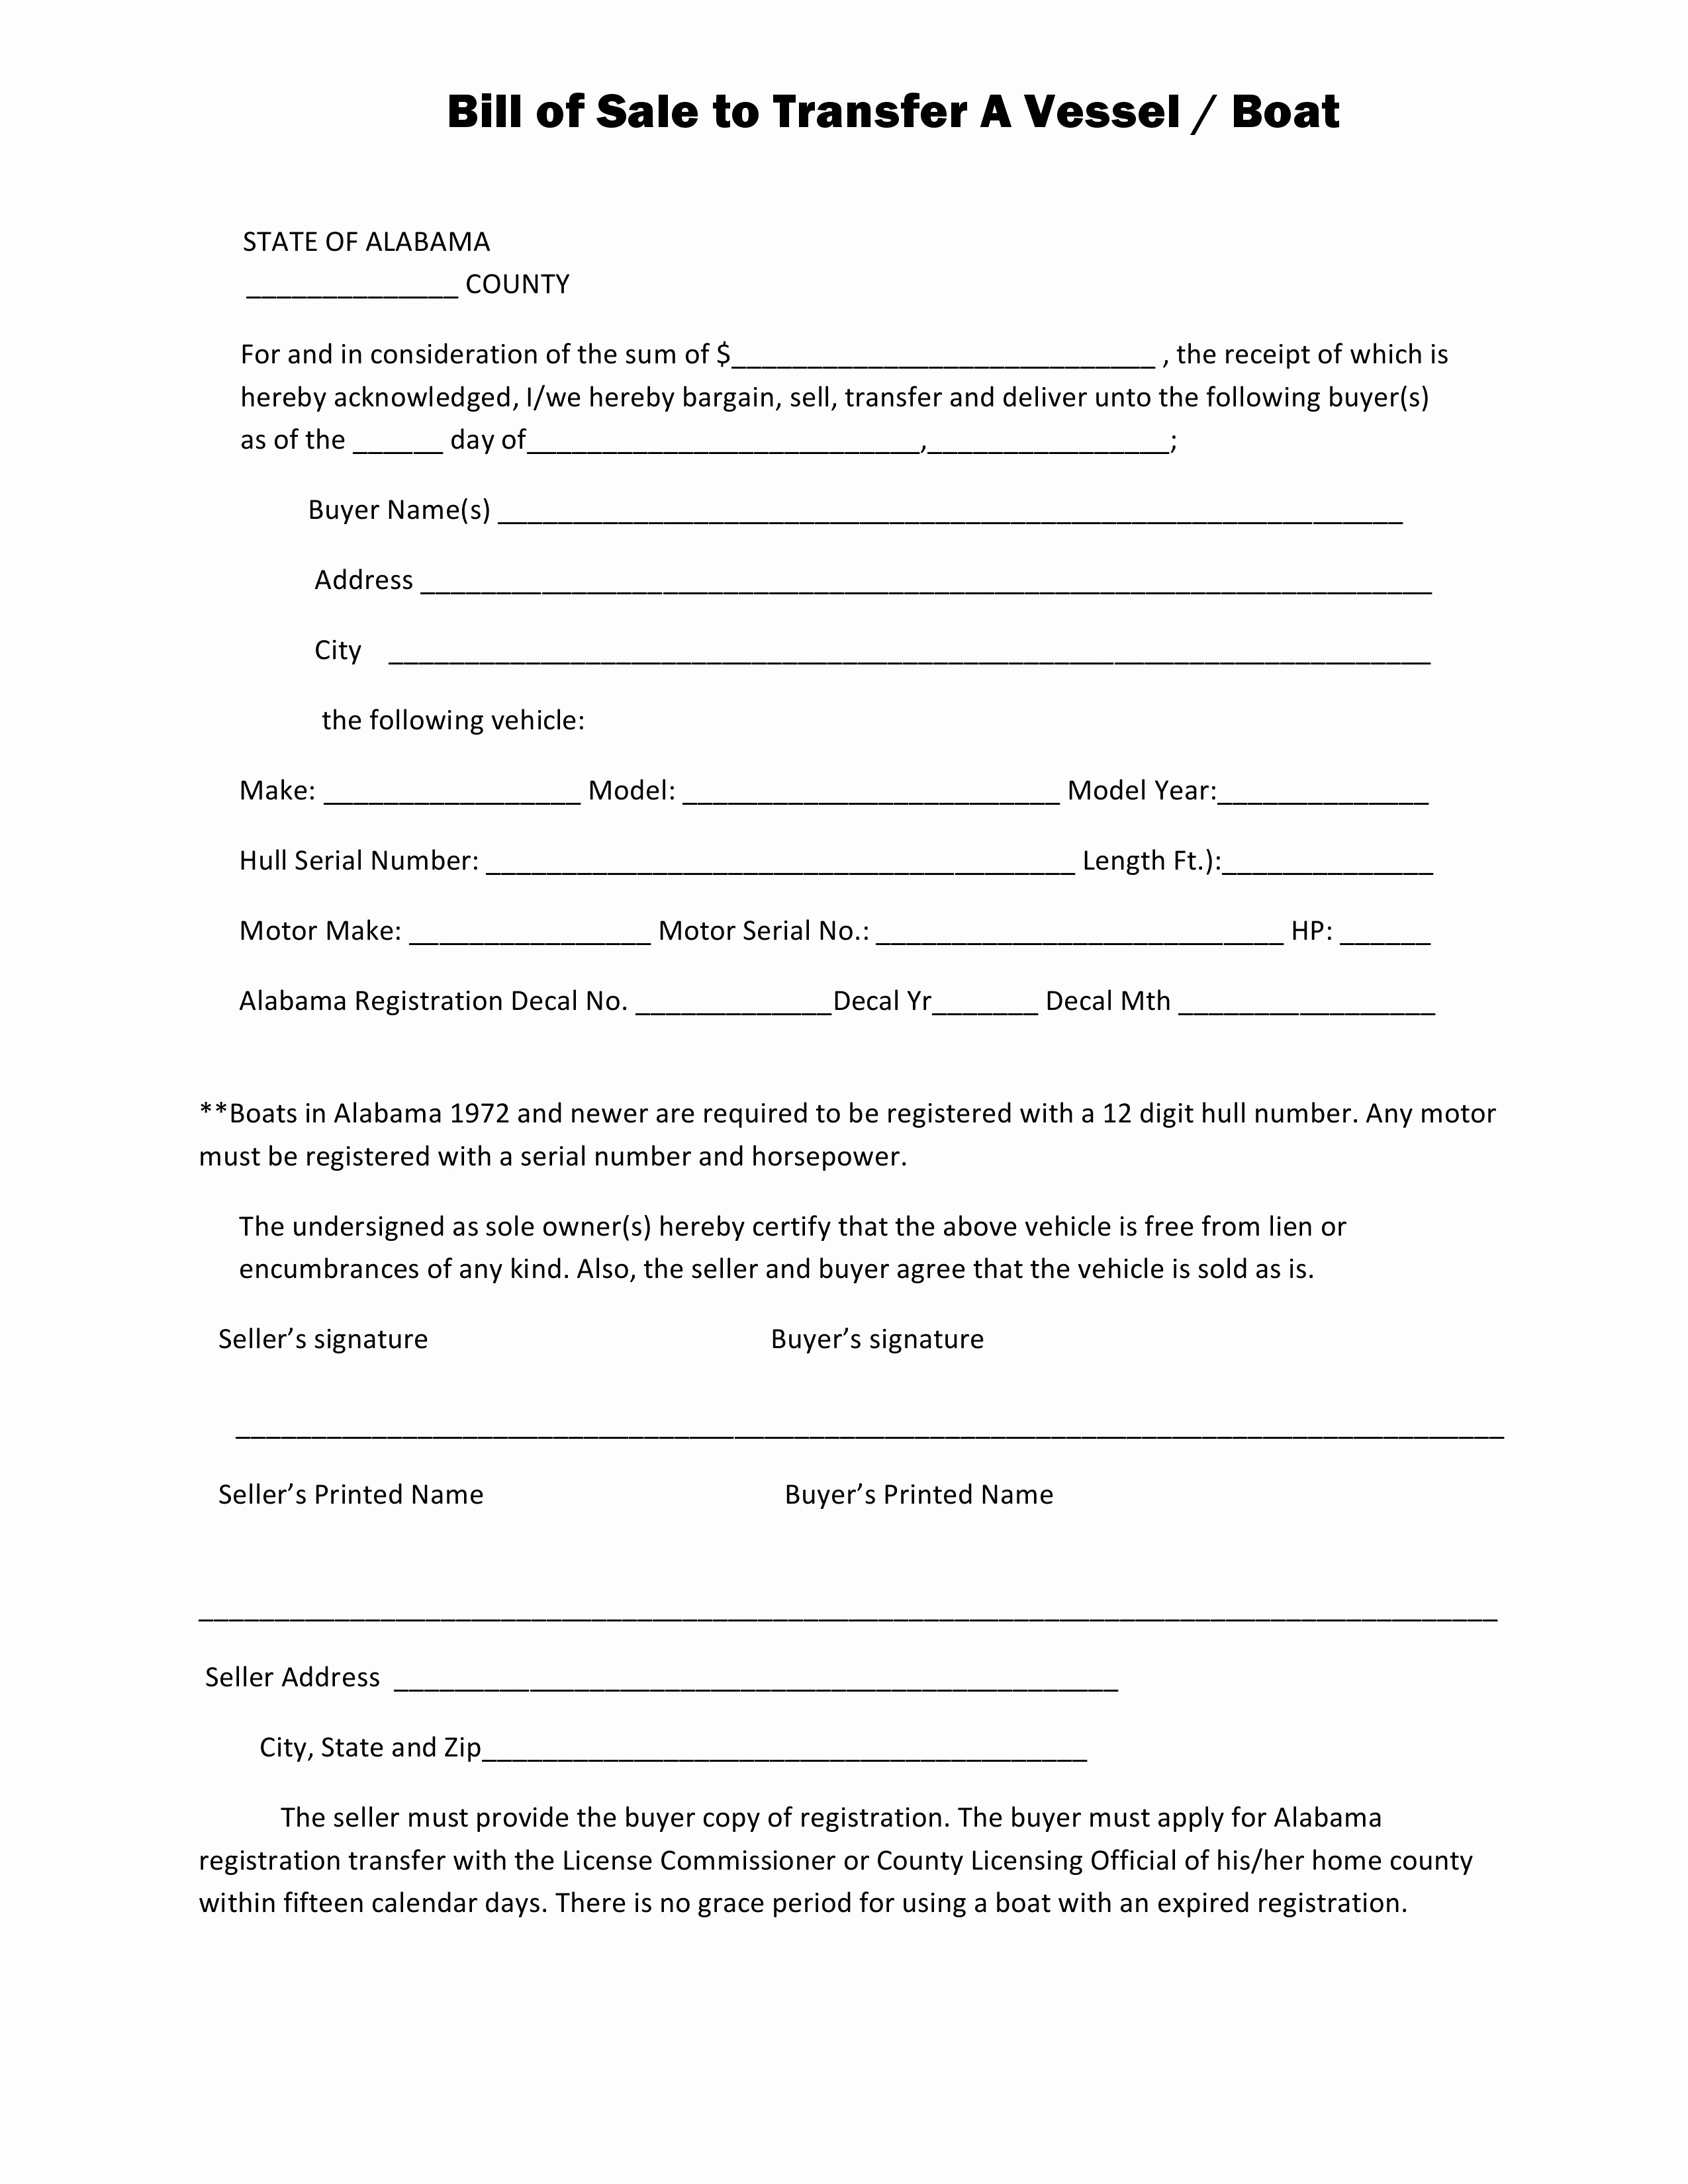 Form Of Bill Of Sale New Free Alabama Boat Bill Of Sale form Pdf